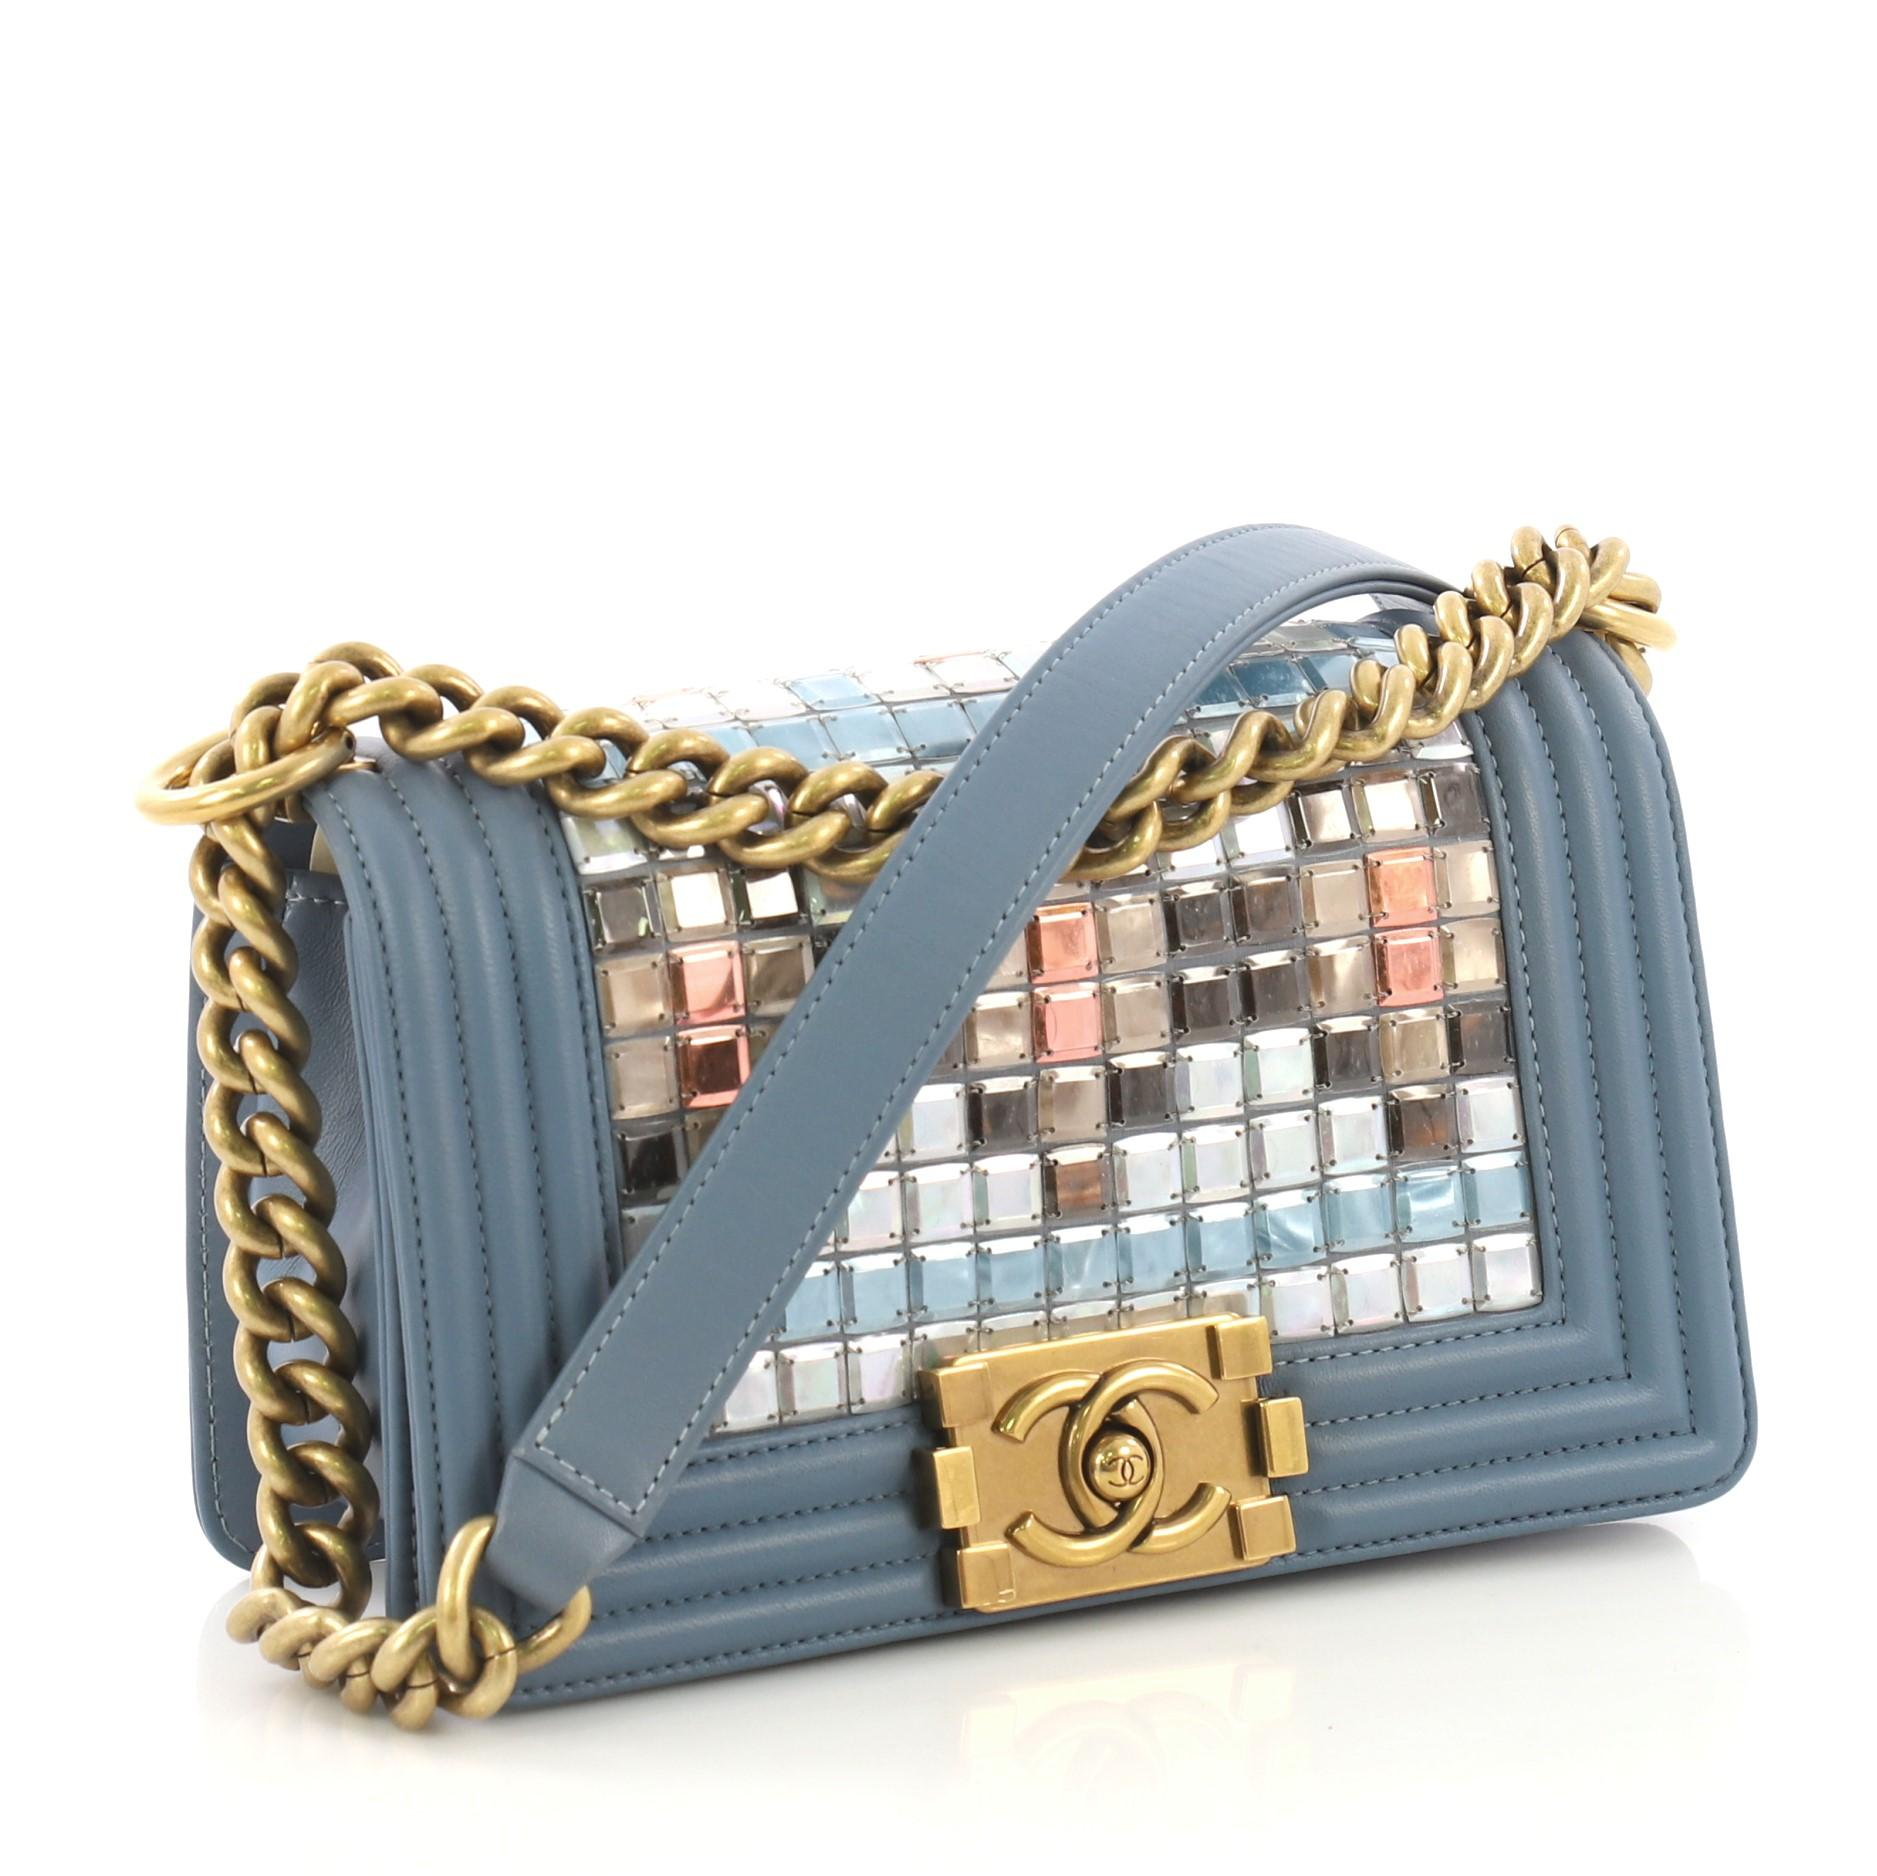 23f8e5576108 Chanel Mosaic Boy Flap Bag Embellished Lambskin Small at 1stdibs